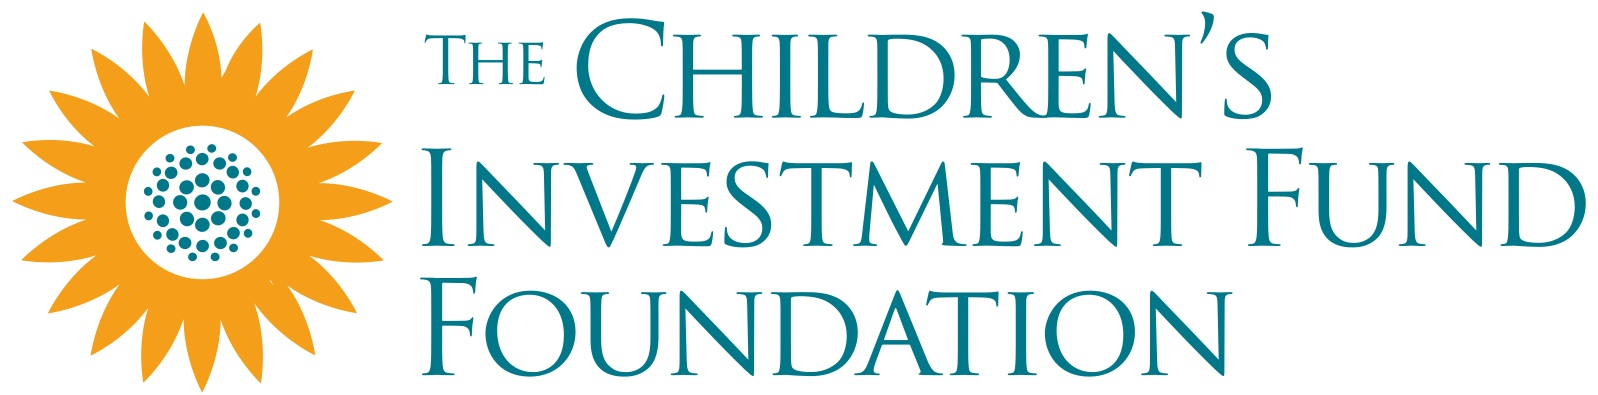 Childrens Investment Fund.png